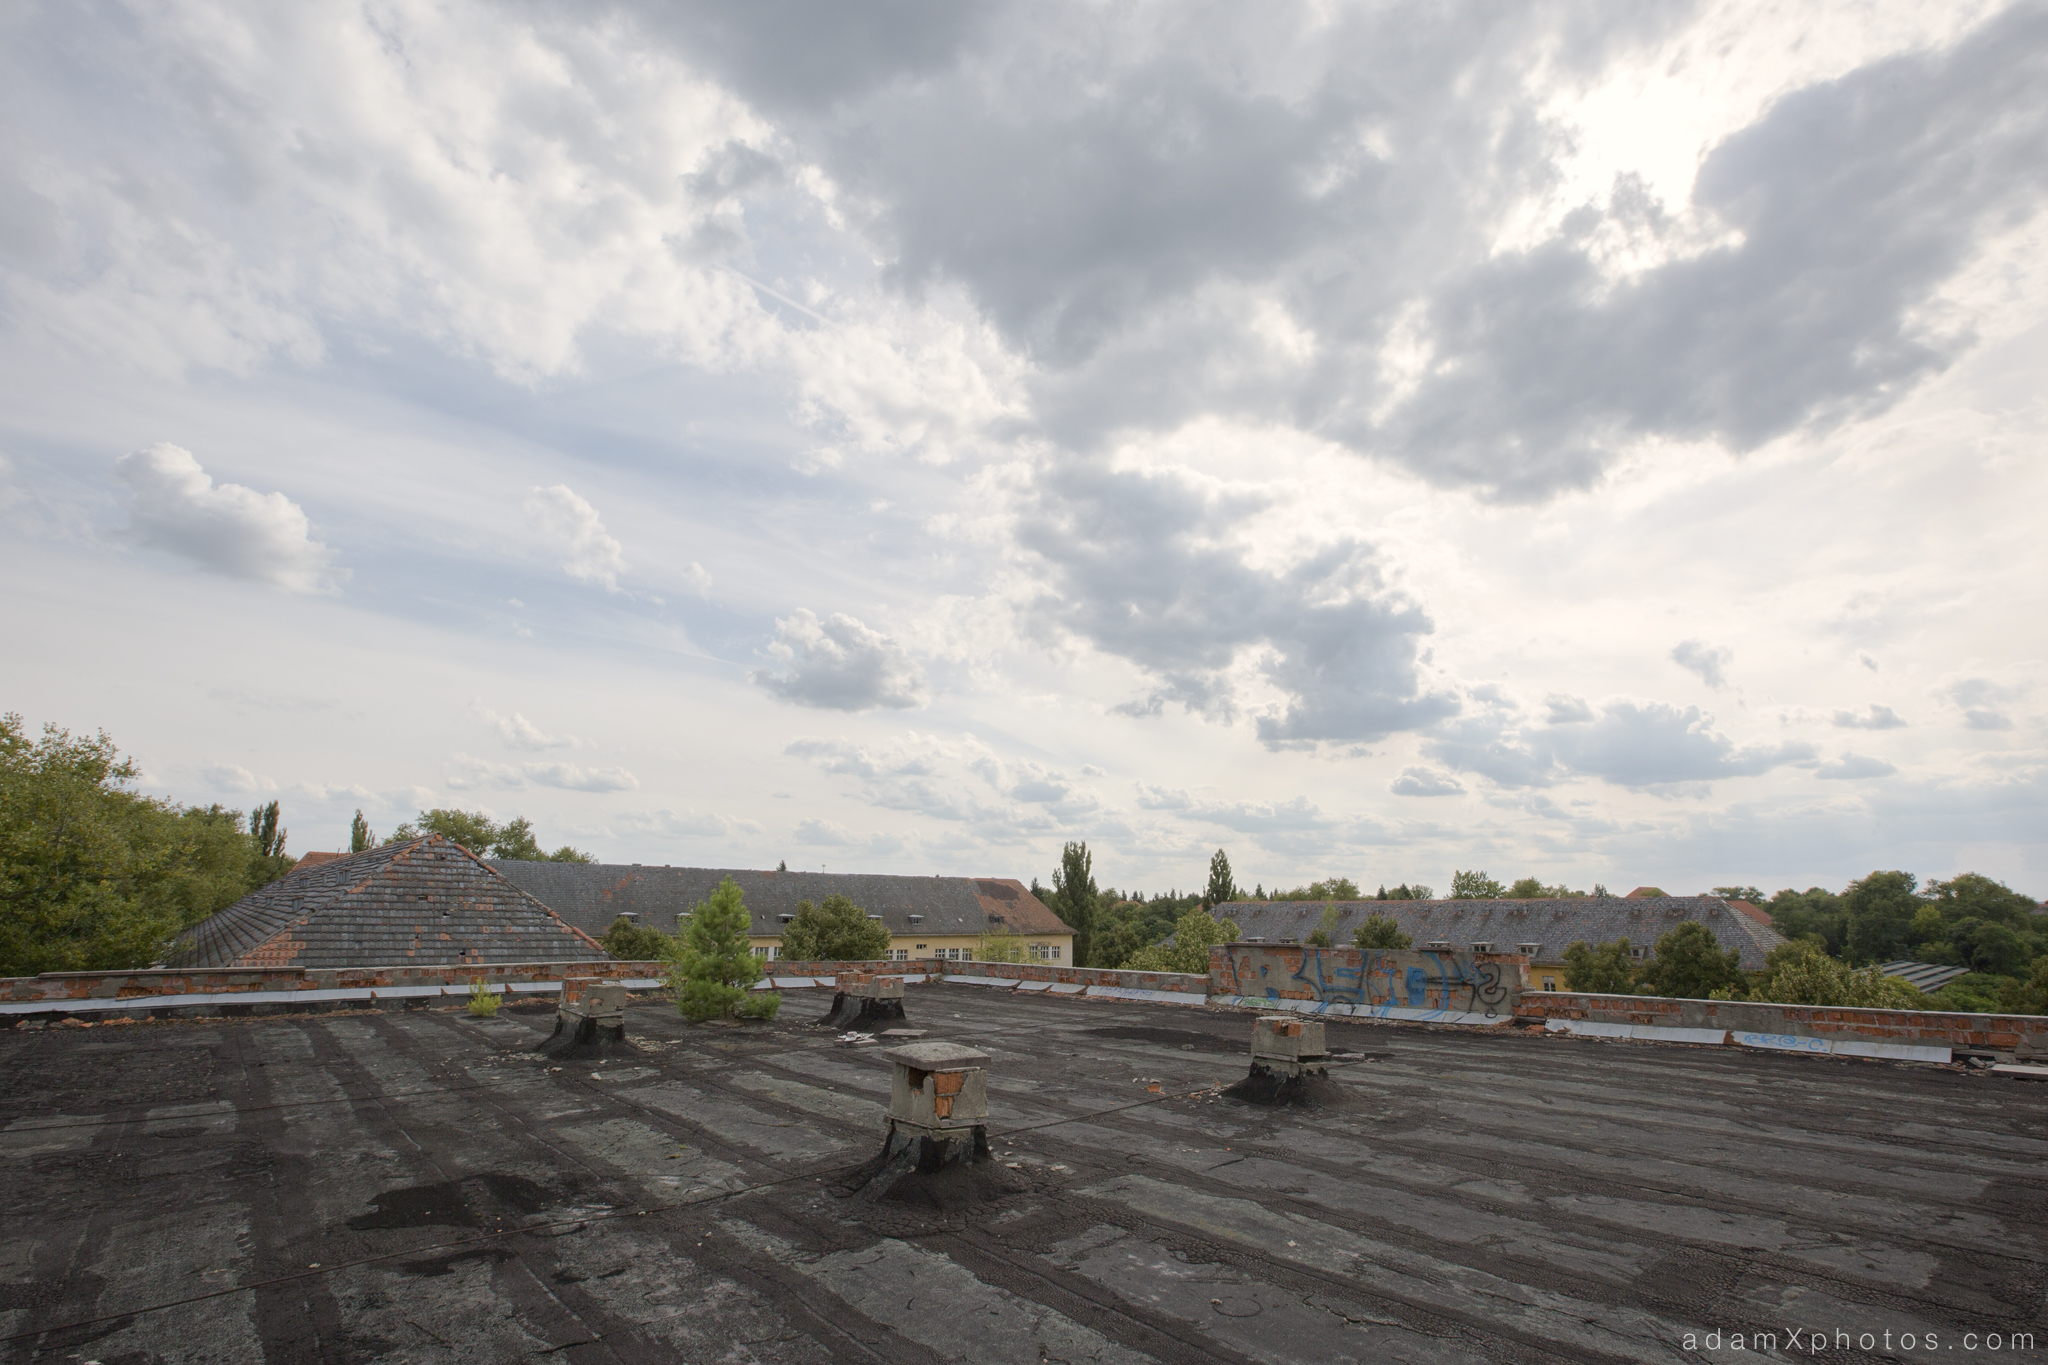 Adam X Urbex Urban Exploration Abandoned Germany Wunsdorf barracks roof view external